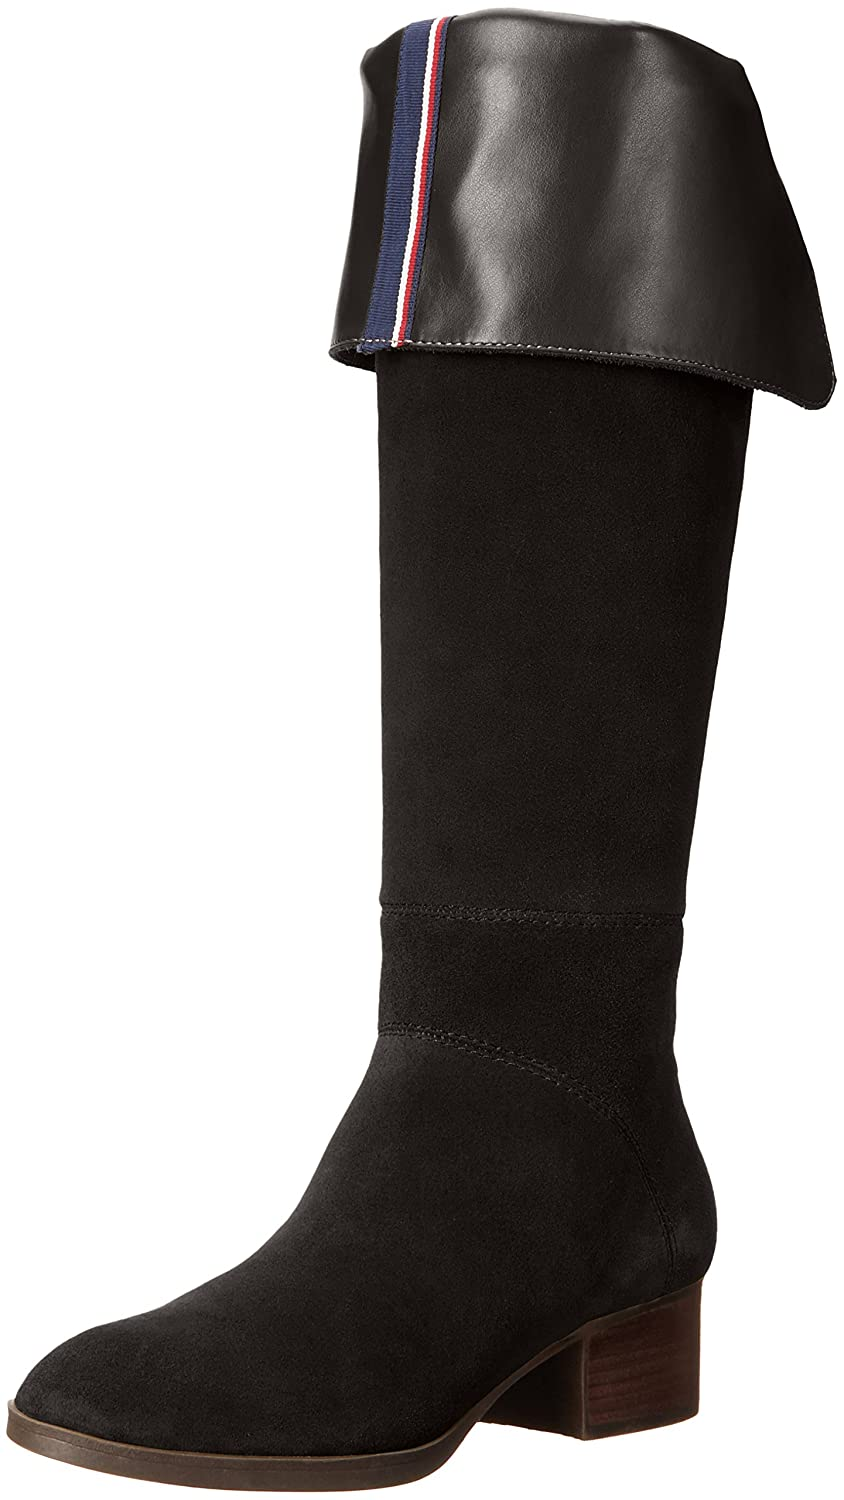 Tommy Hilfiger Women's Gianna Western Boot B01M0AAFPZ 9.5 B(M) US|Black Suede